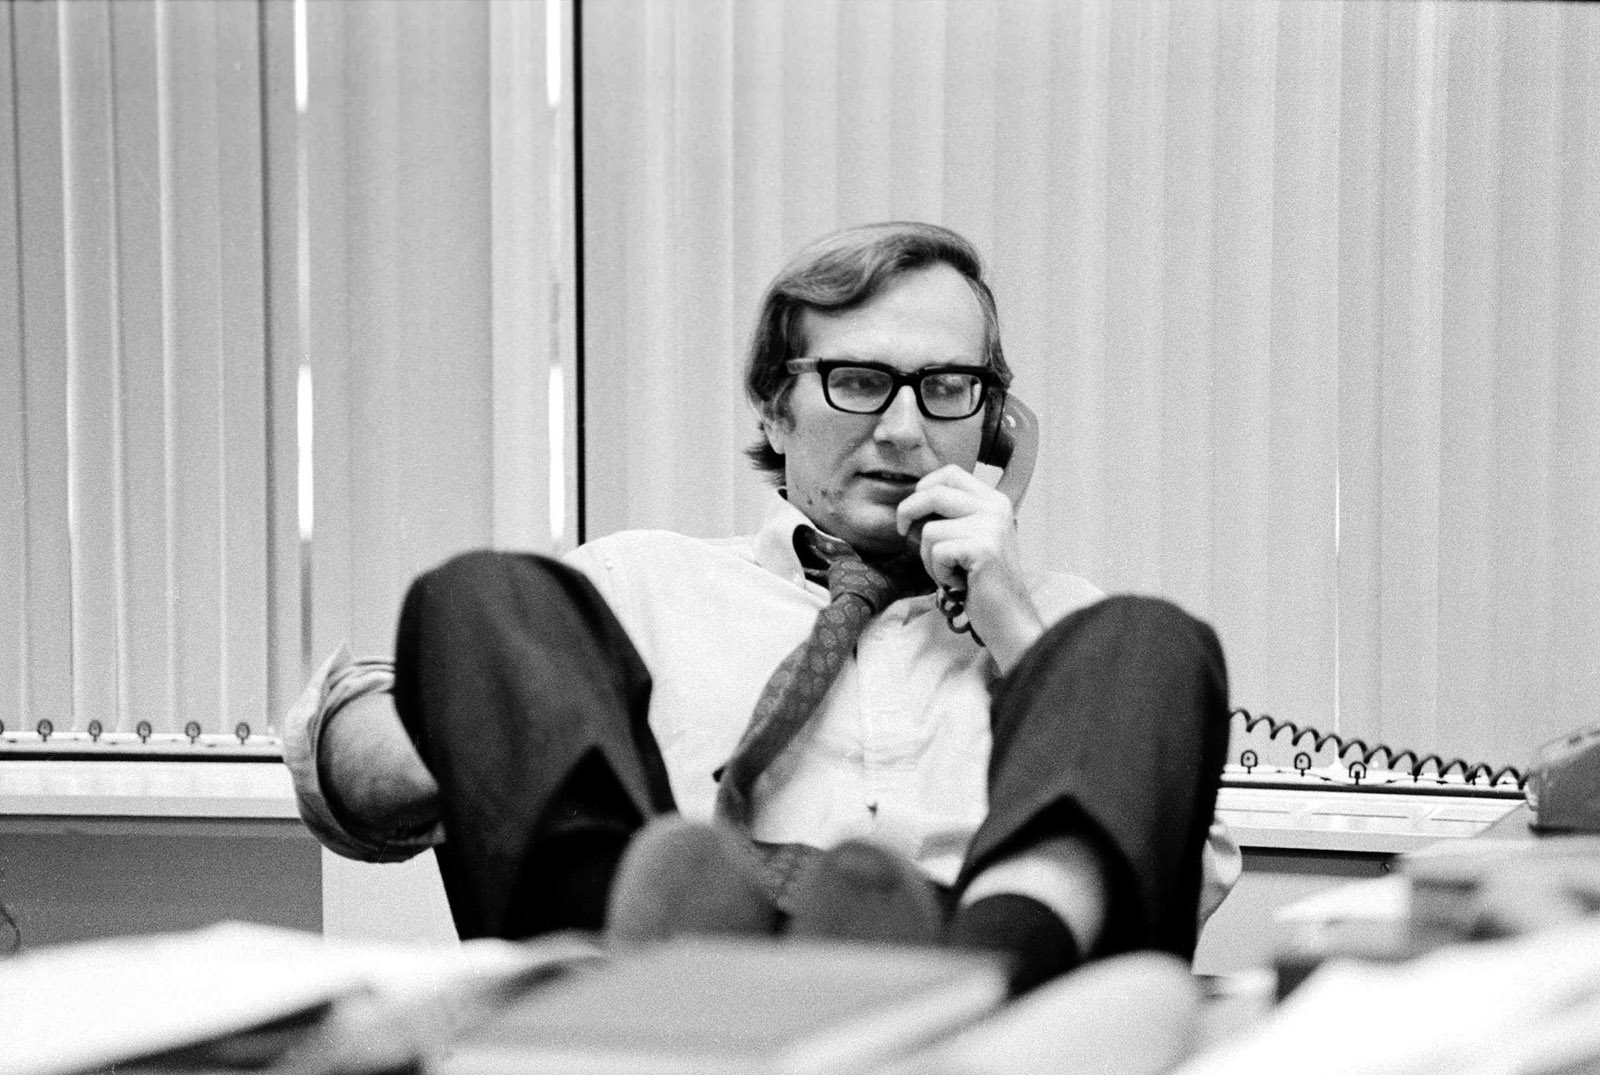 Seymour Hersh in his office at the Washington bureau of The New York Times, 1975